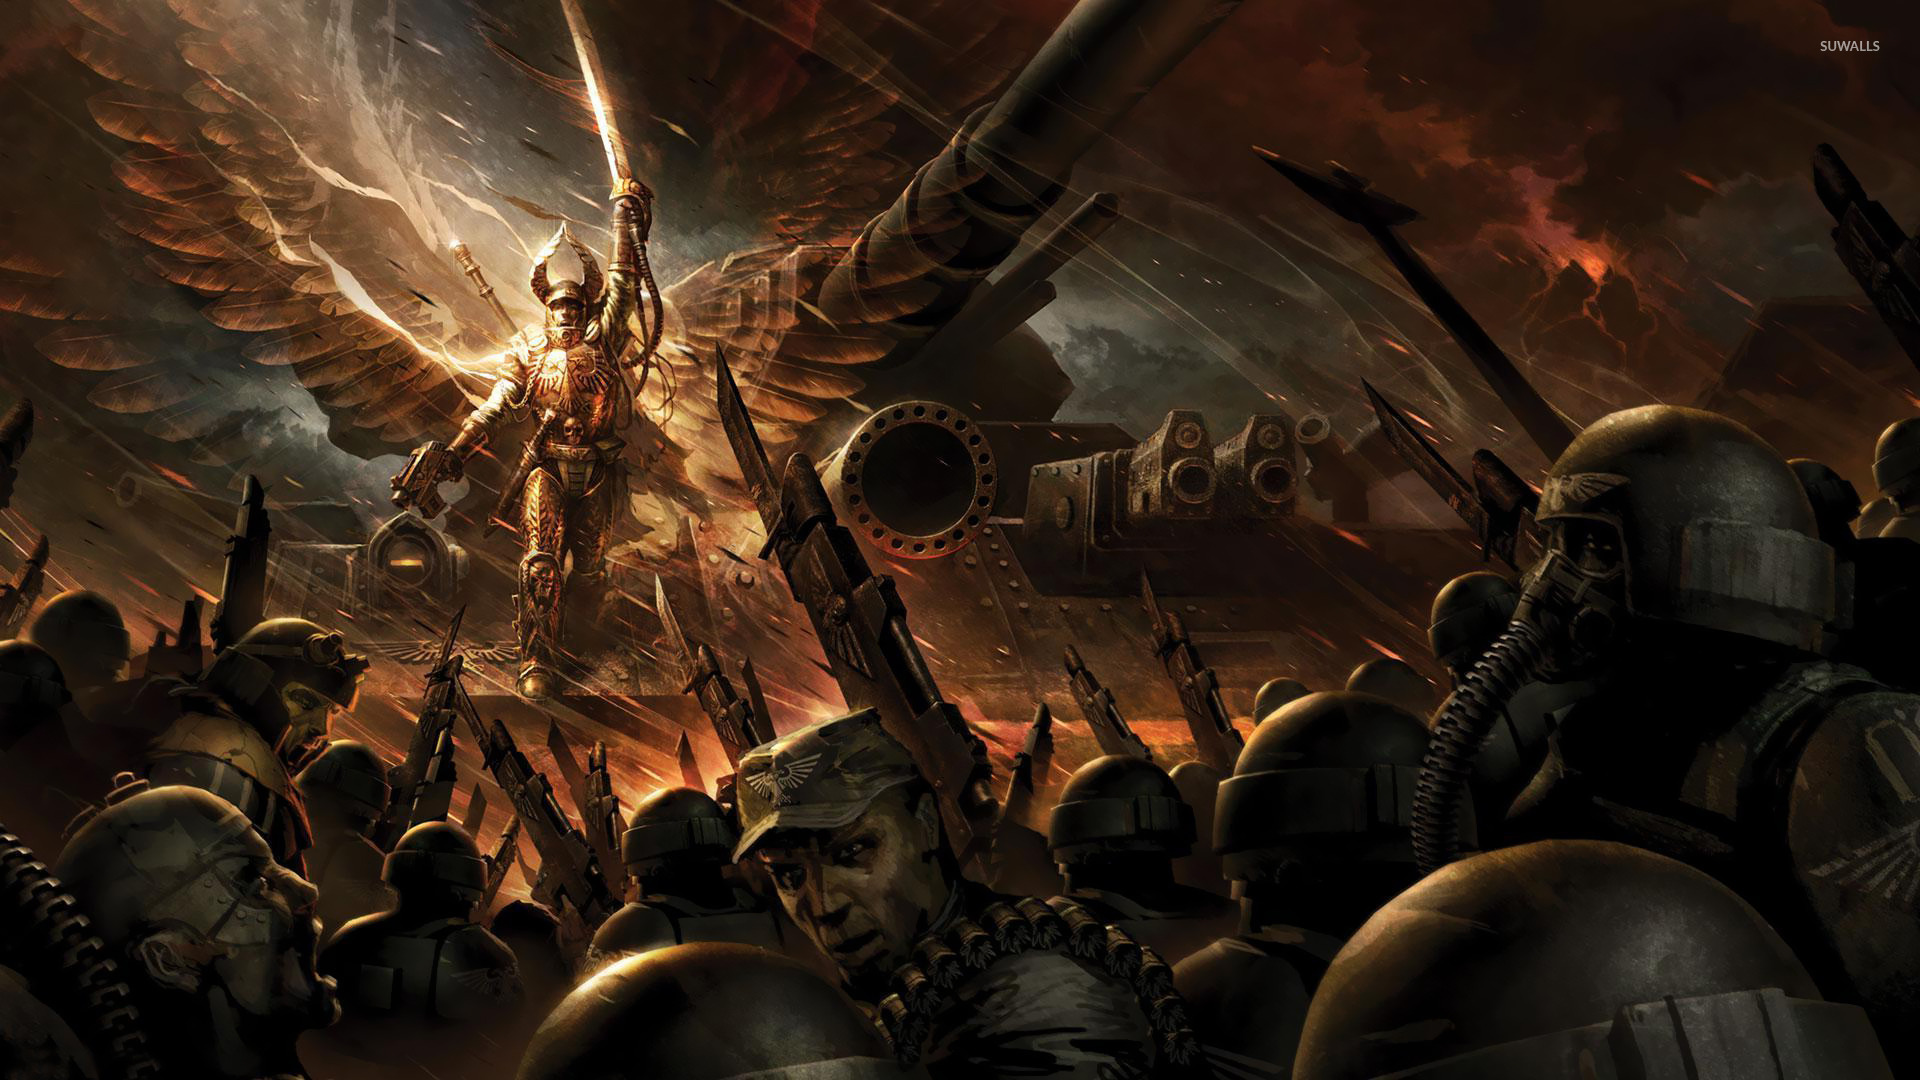 Warhammer wallpaper   Game wallpapers   15578 1920x1080